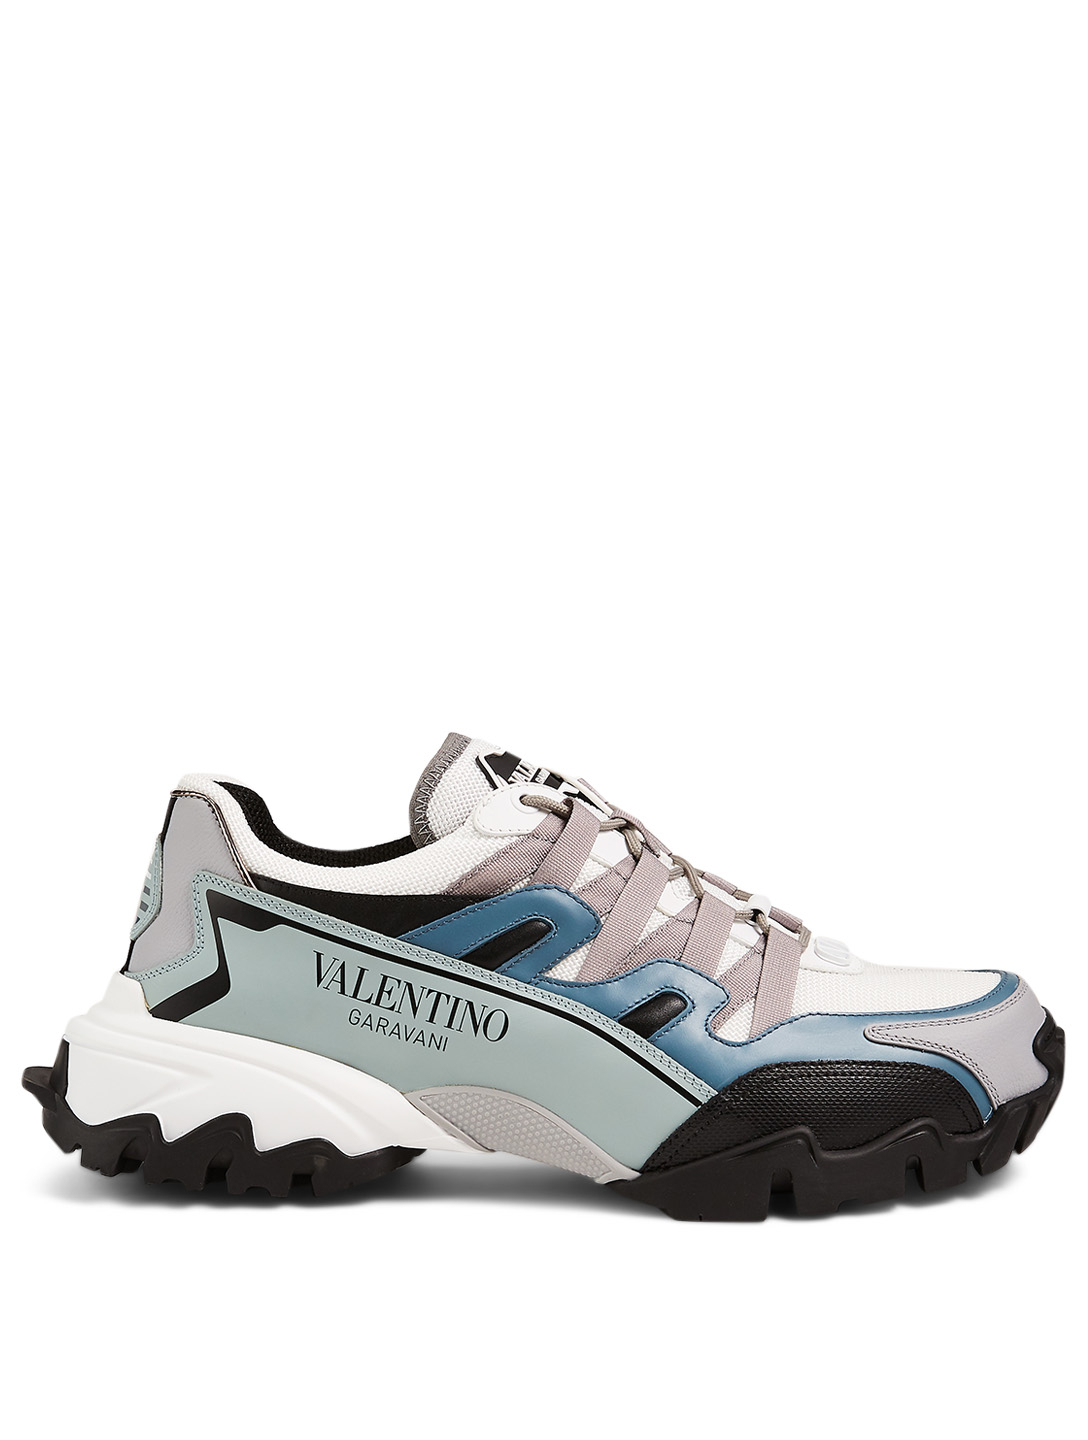 VALENTINO GARAVANI Climber Leather and Fabric Sneakers Men's Grey